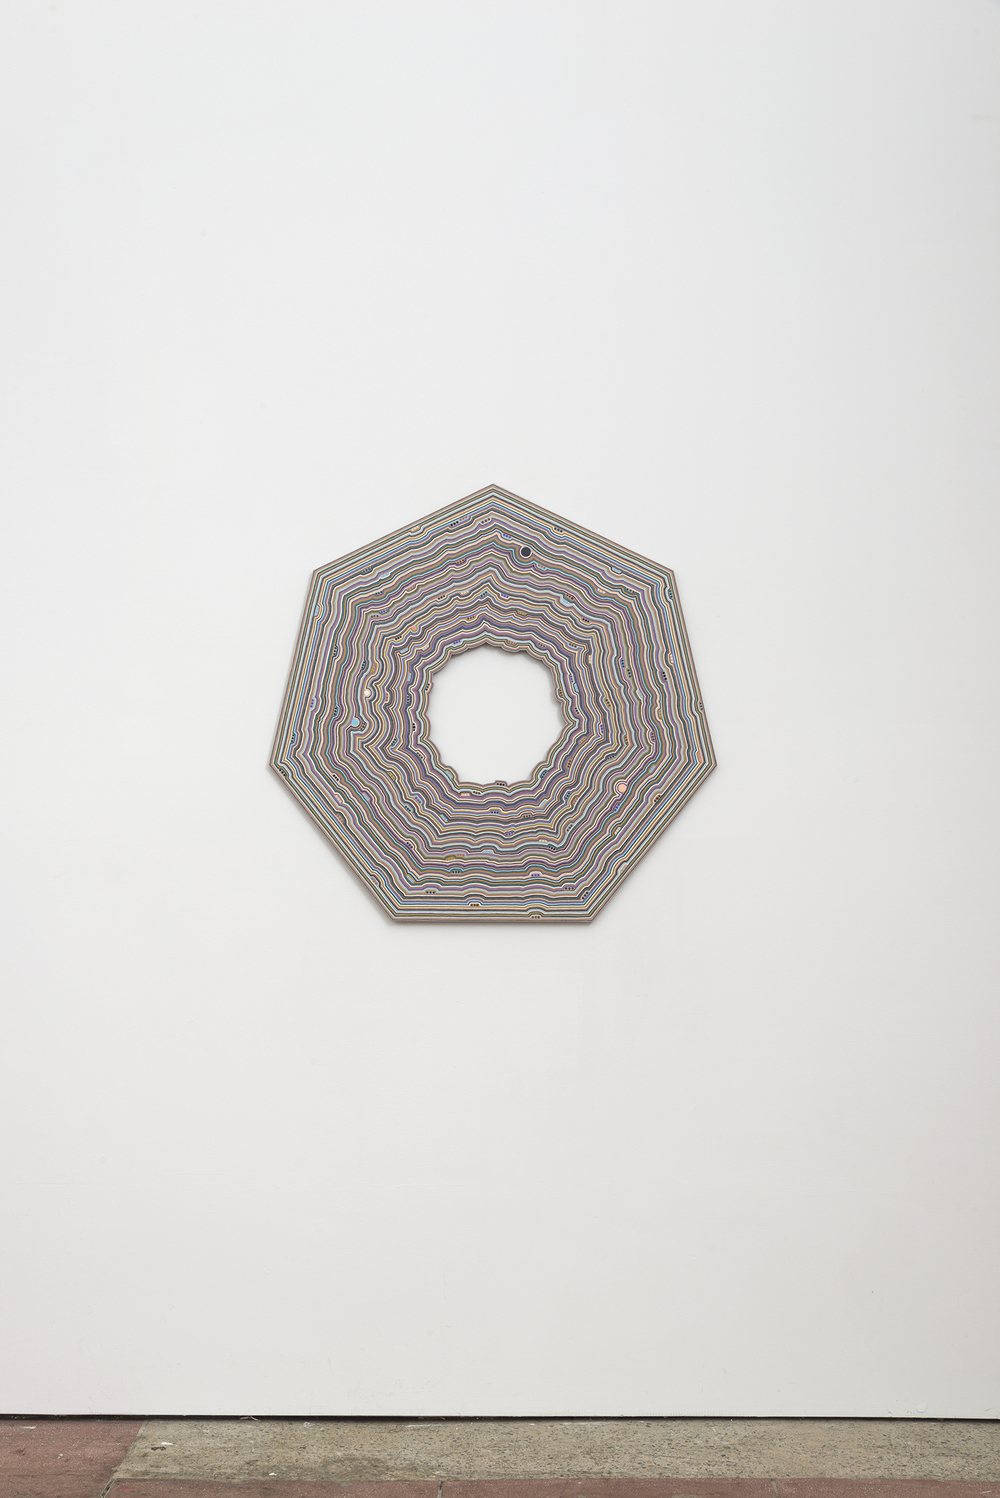 Roland Thompson,  Orbit Swarm , 2016, acrylic on aluminum, 34 x 34 in